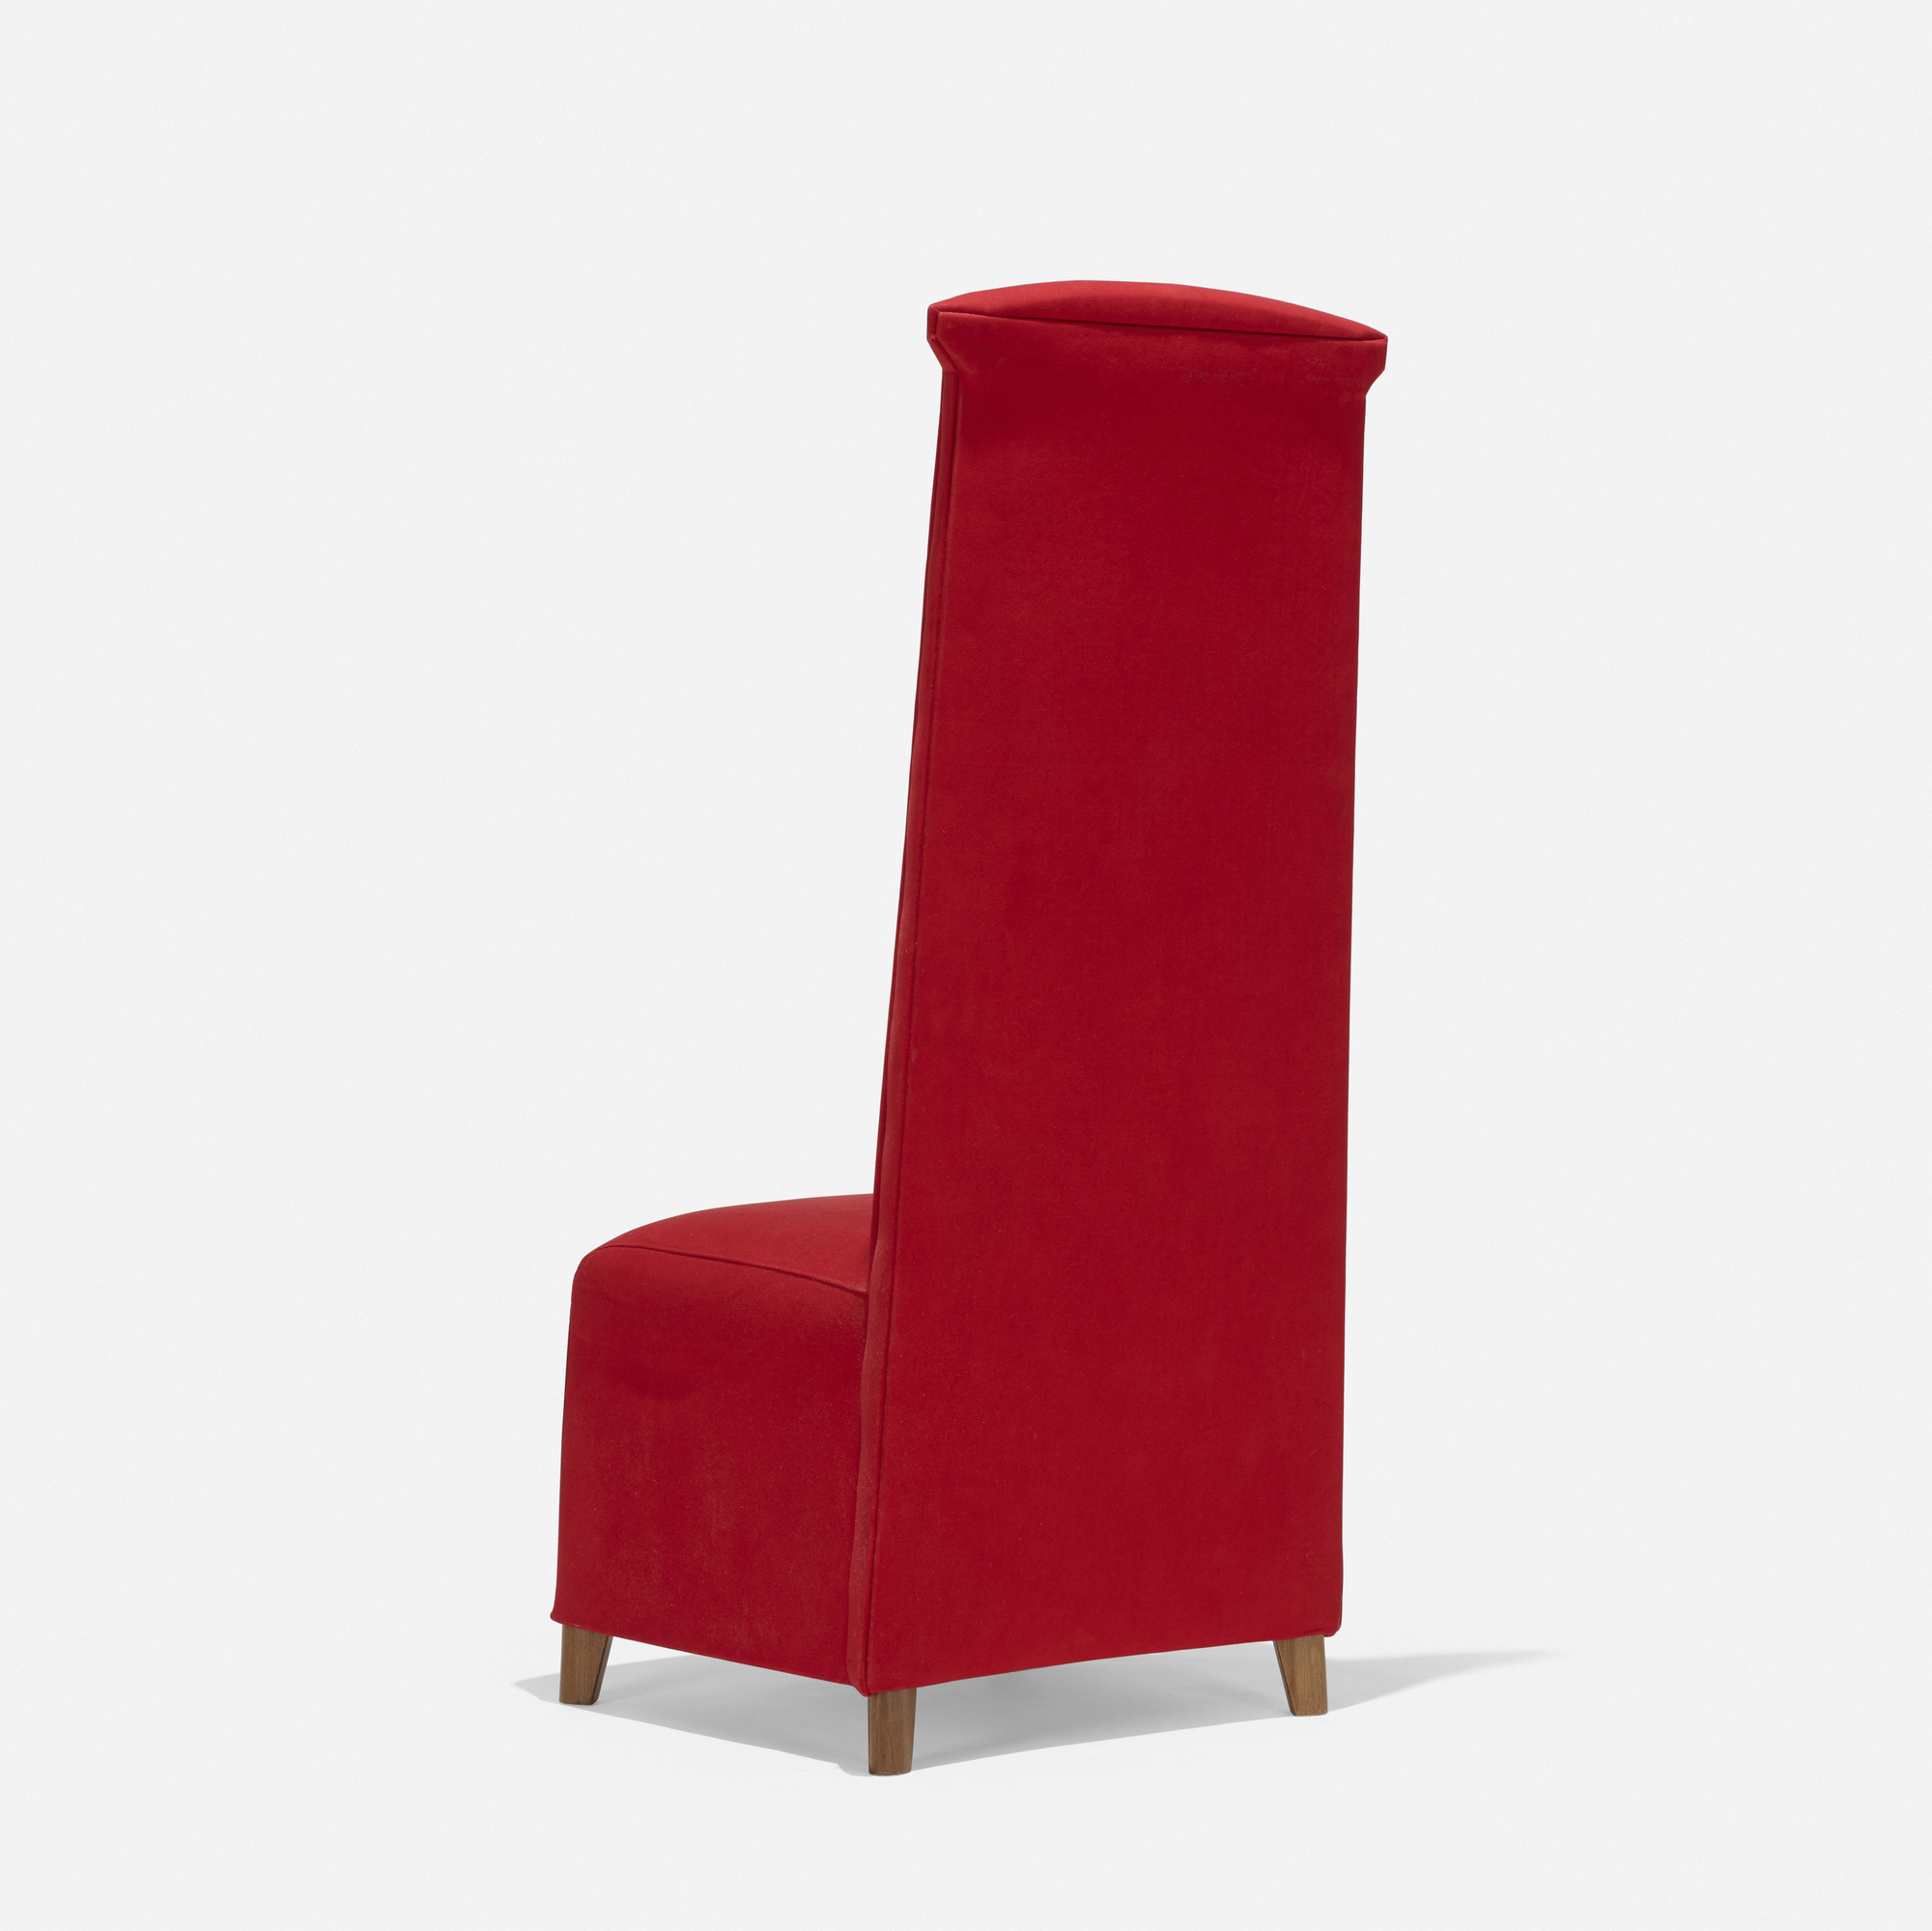 390: Lievore Altherr Molina / Manolete chair (3 of 3)